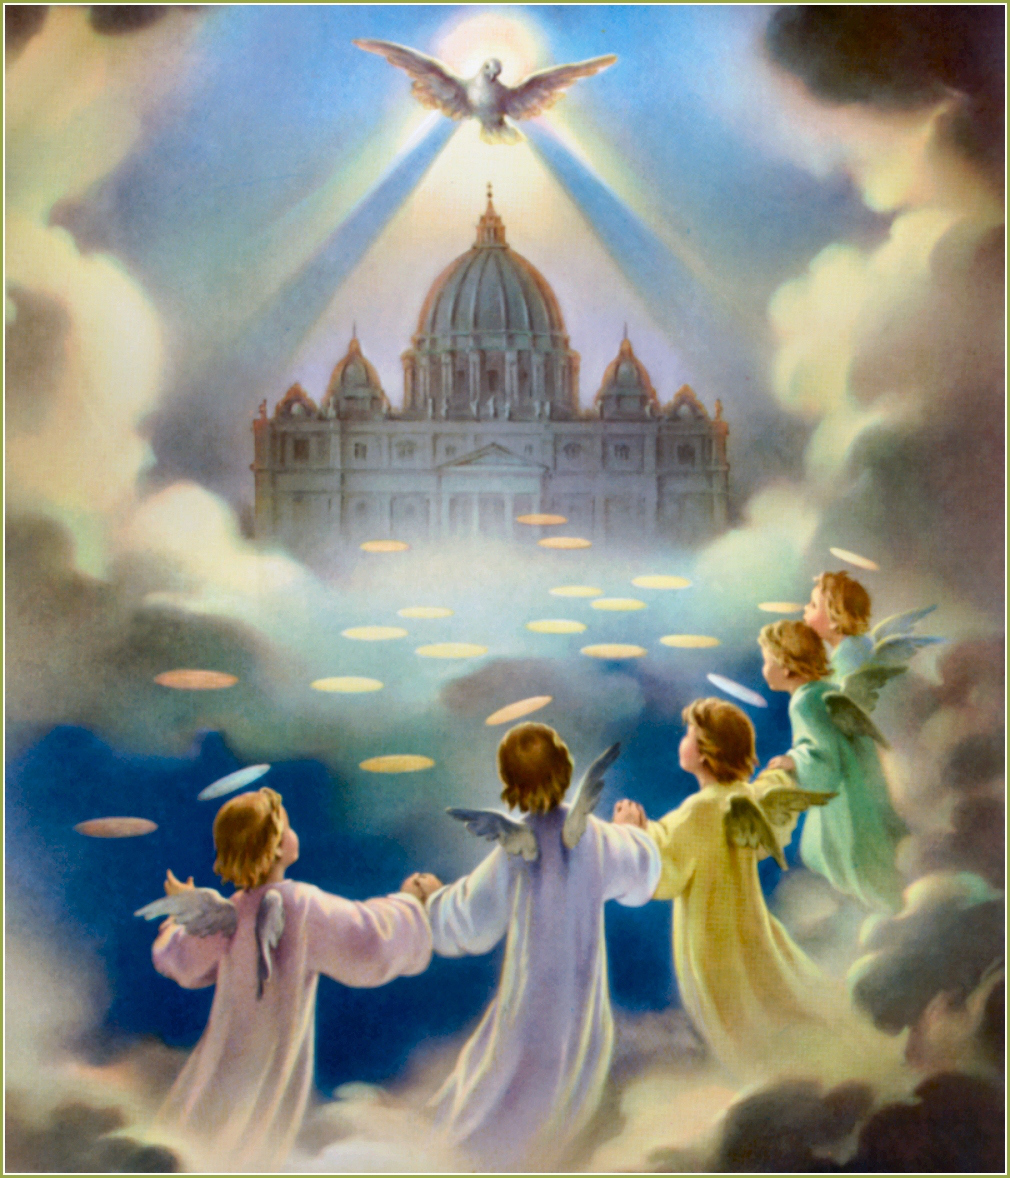 I believe in the Holy Ghost, the Holy Catholic Church, the communion of saints, the forgiveness of sins, the resurrection of the body, and life everlasting. Amen.